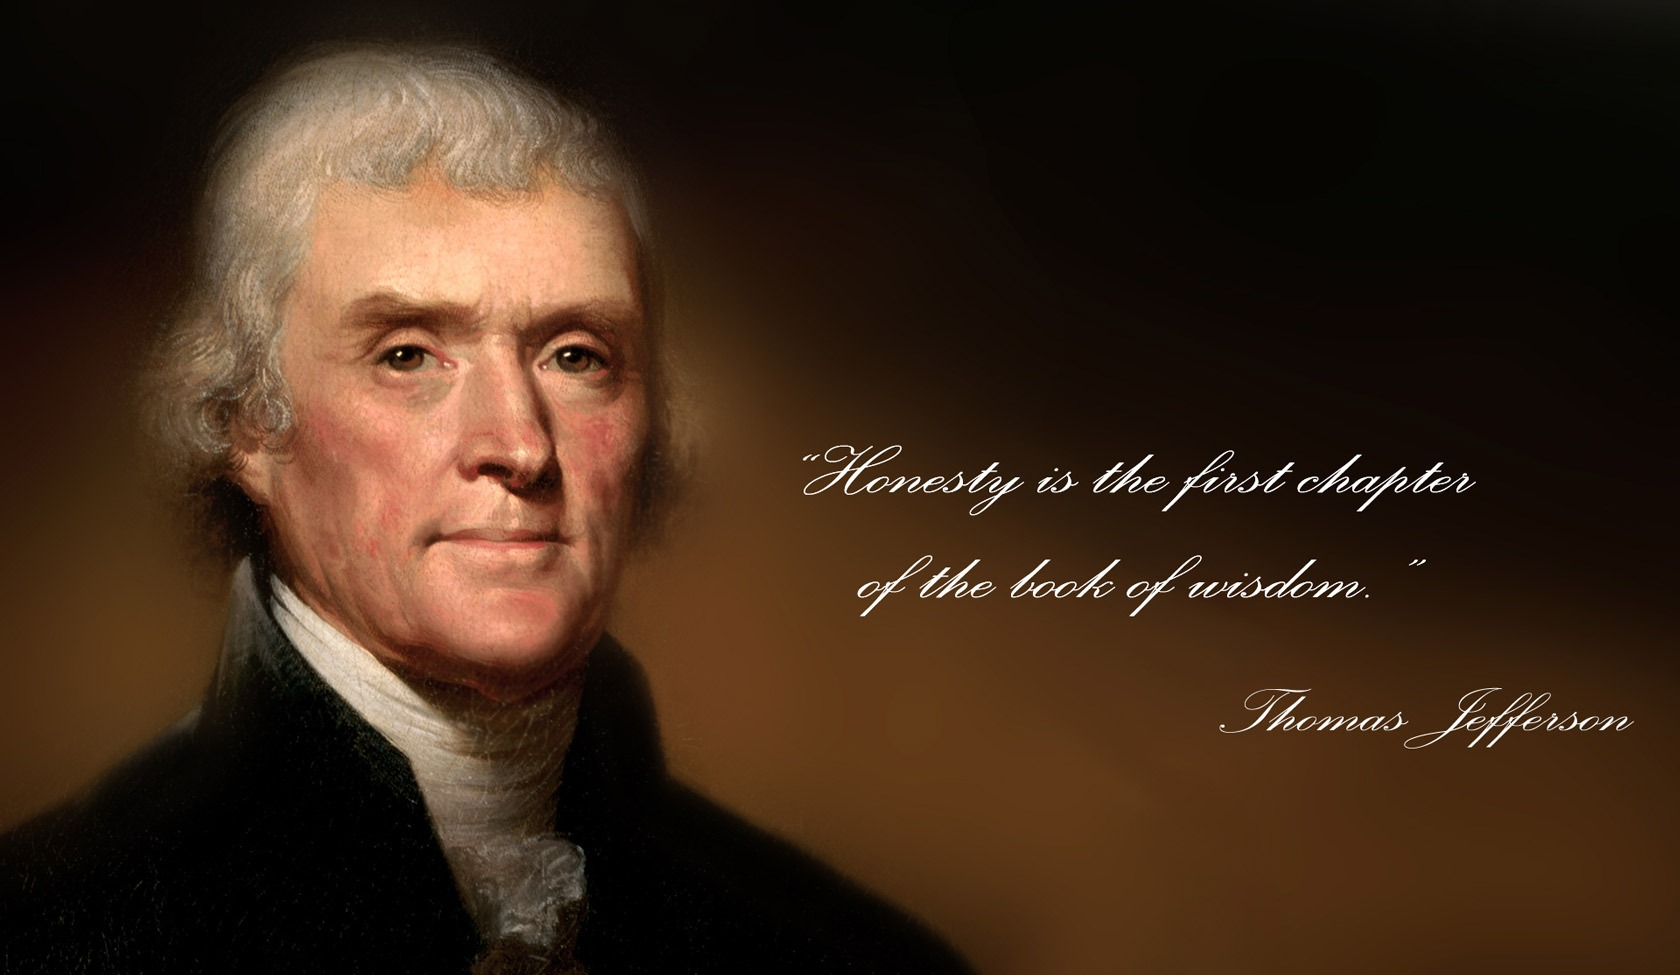 The Pursuit Of Happiness Quotes Life Liberty Pursuit Of Happiness  Thomas Jefferson Quotes